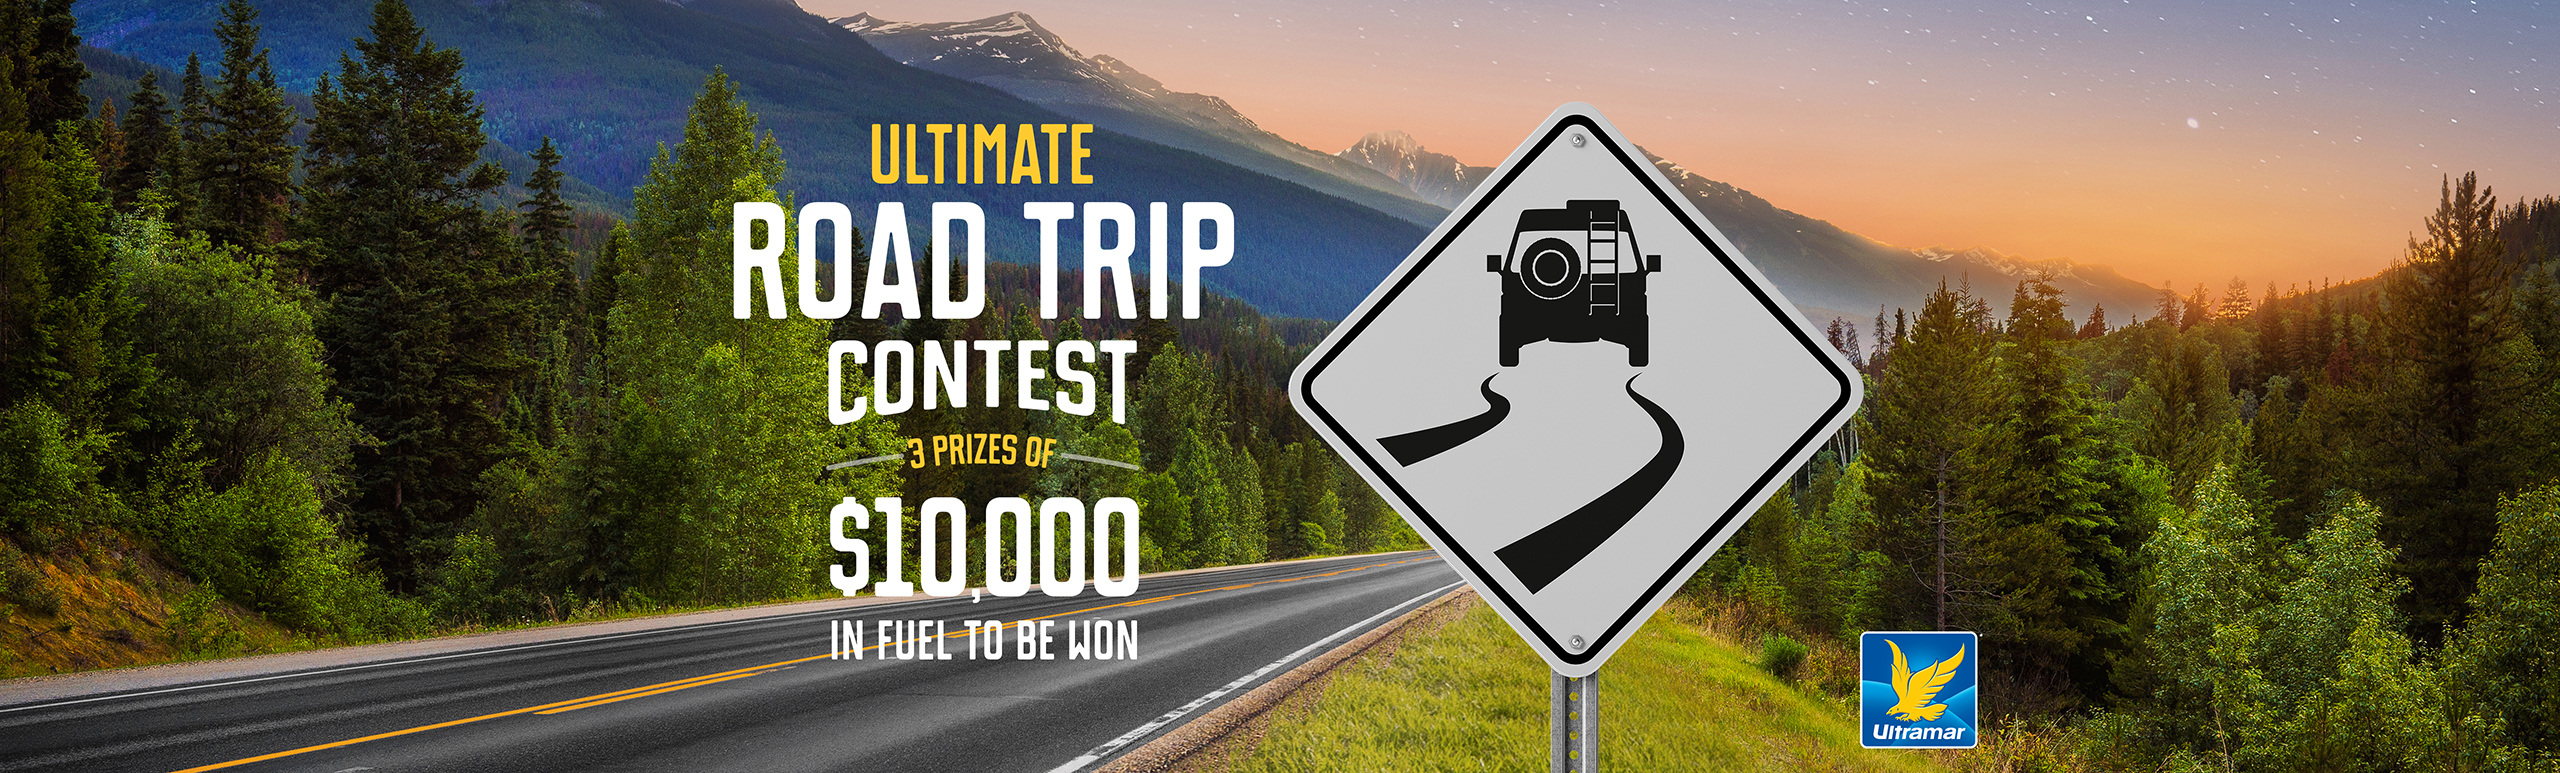 Get a chance to win $10,000 in fuel! ⛽